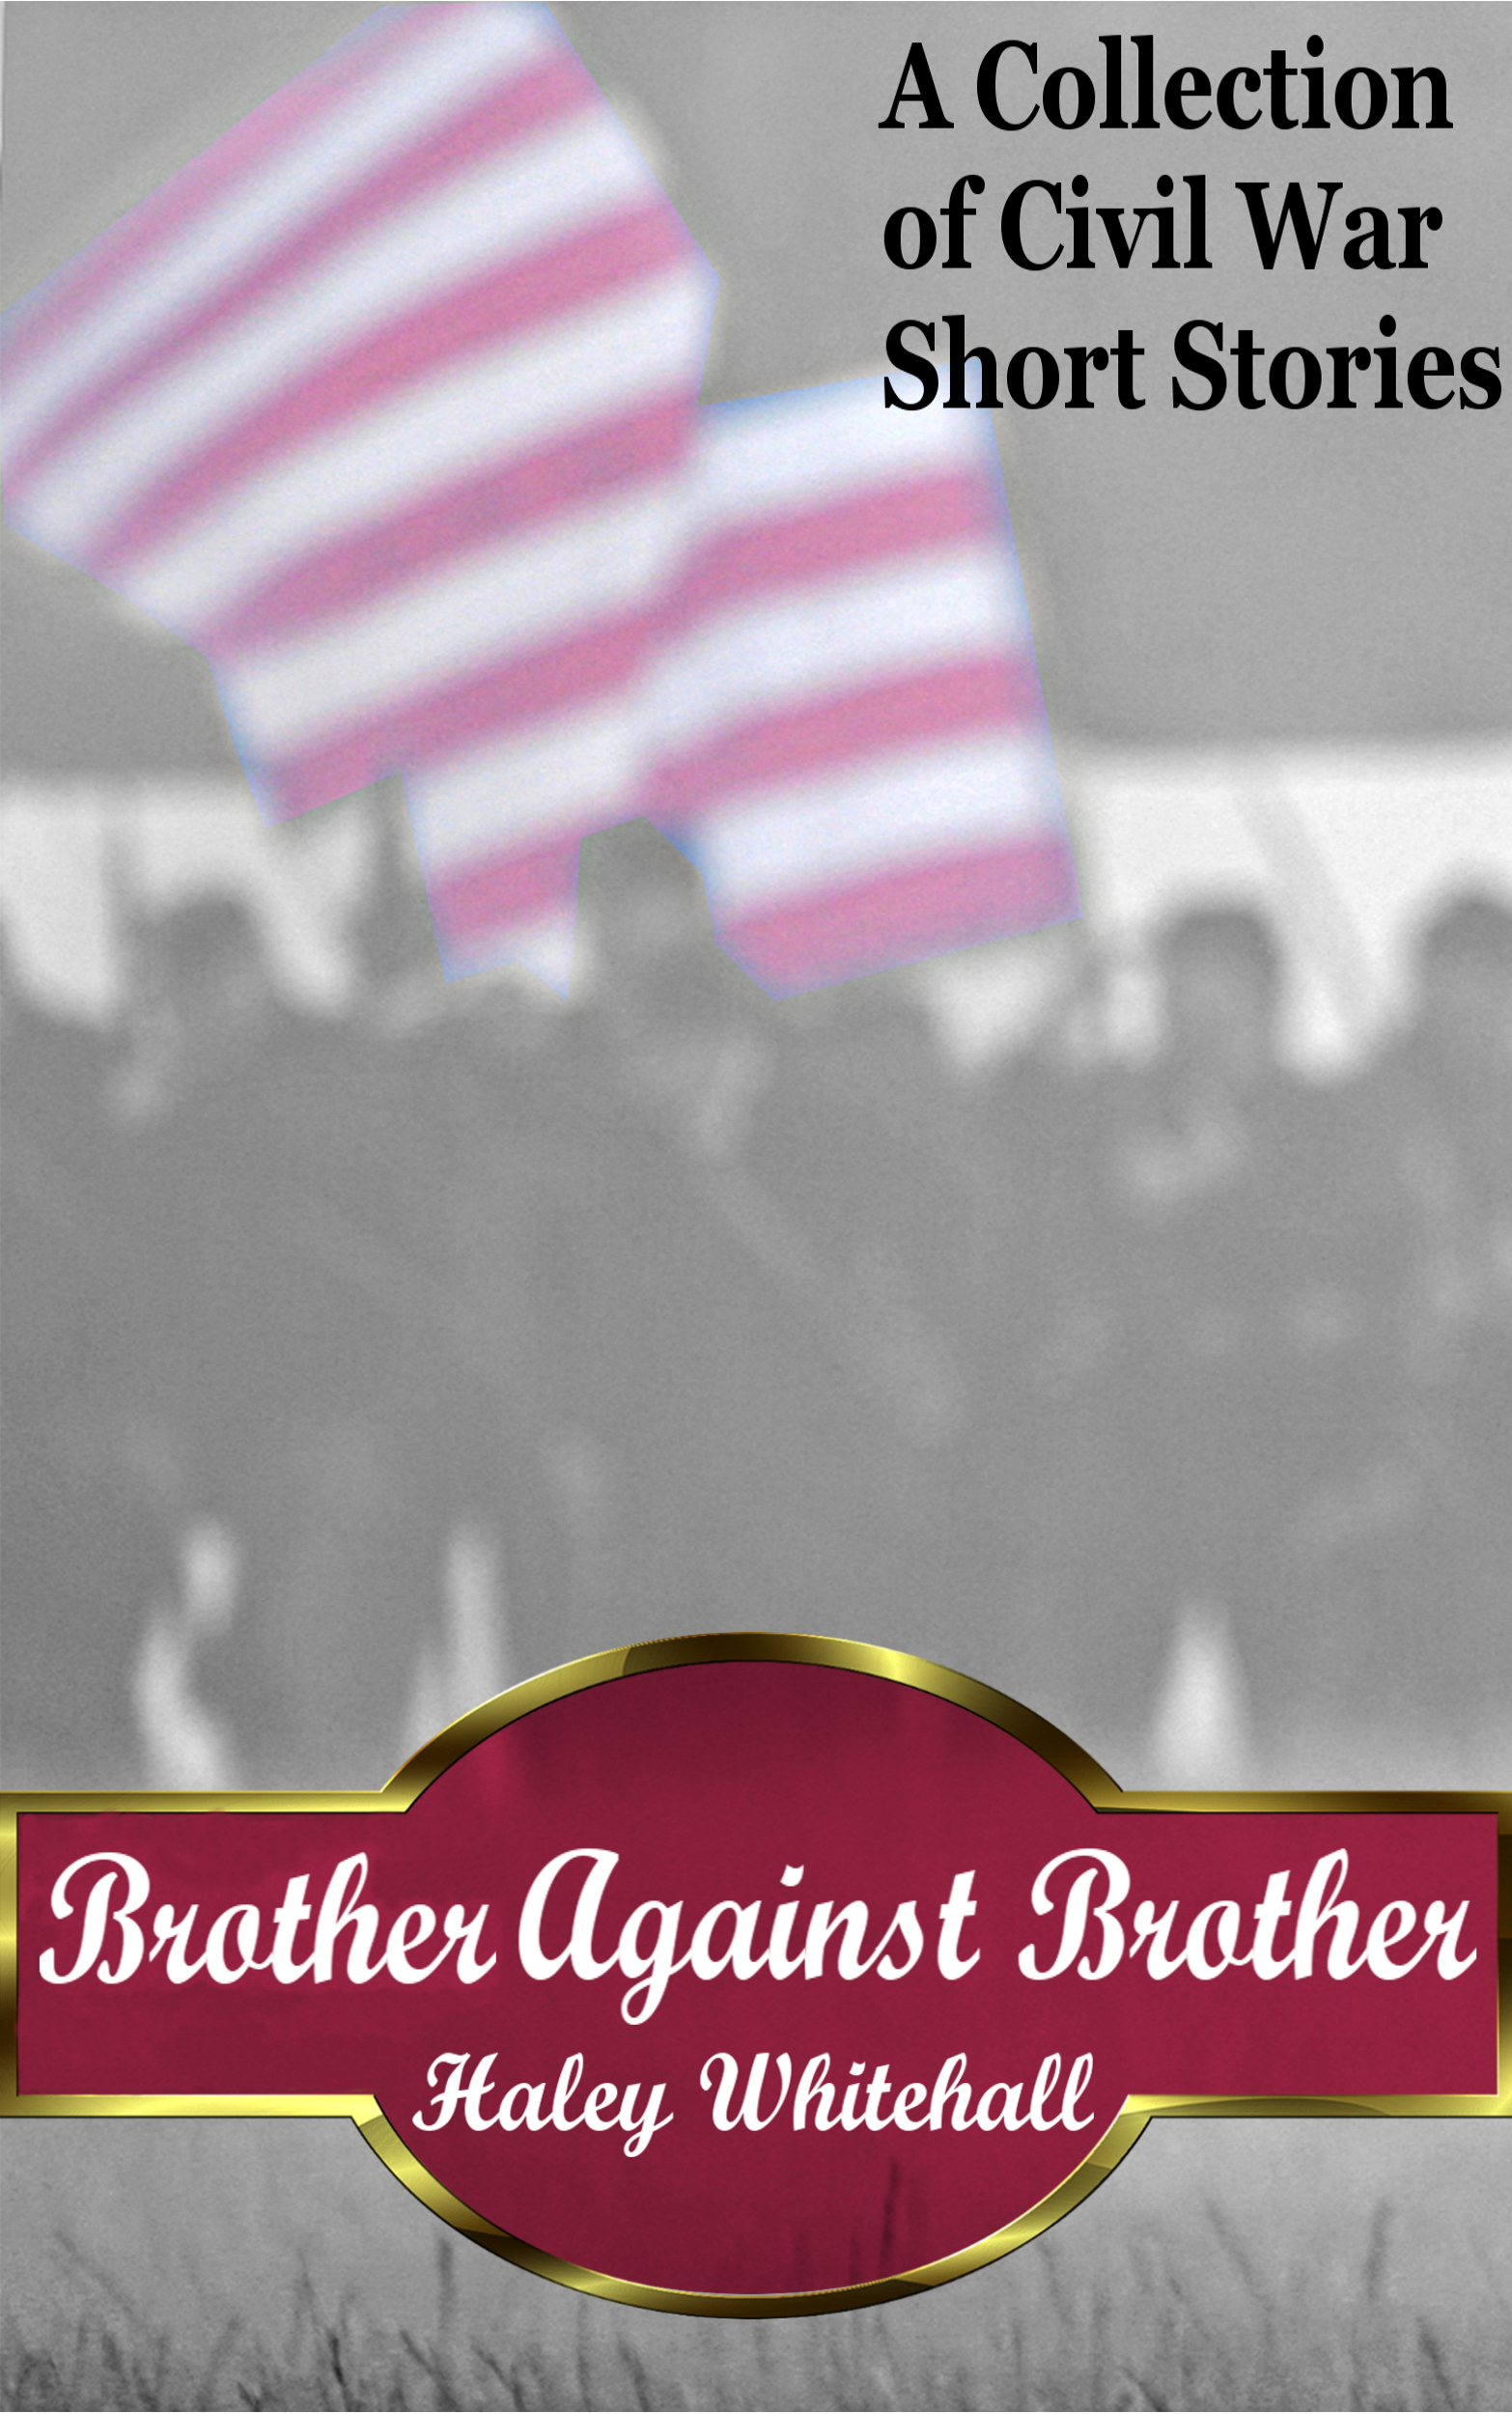 Haley Whitehall - Brother Against Brother: A Collection of Civil War Short Stories